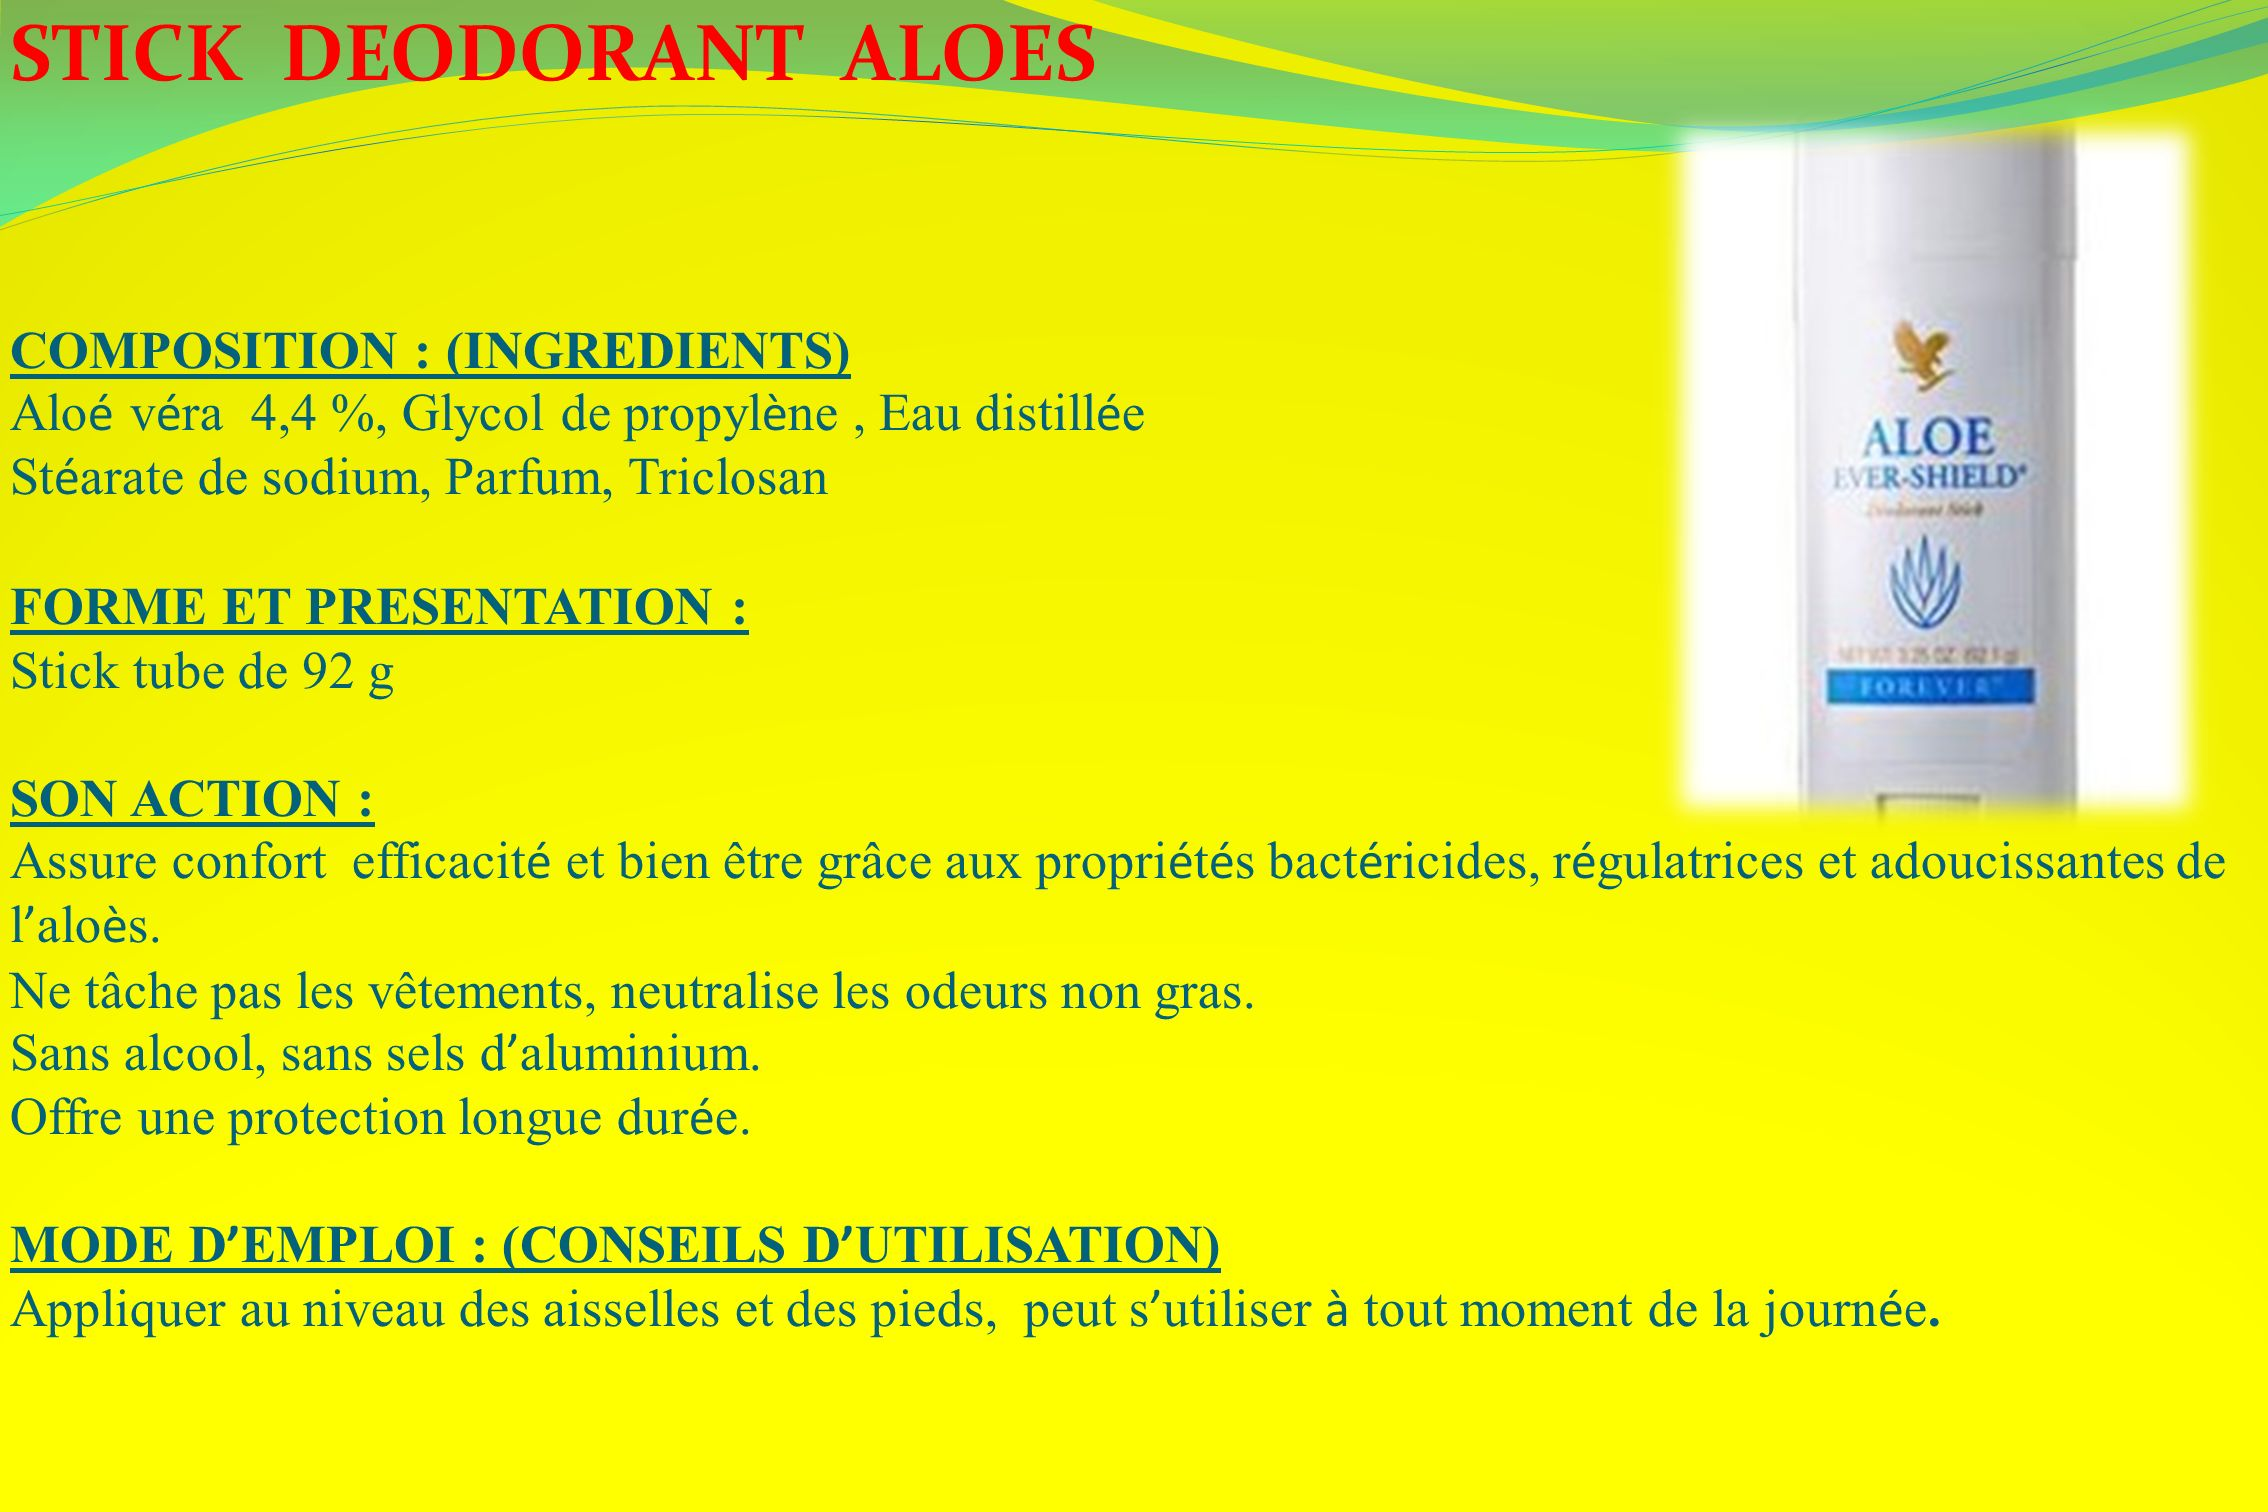 STICK DEODORANT ALOES COMPOSITION : (INGREDIENTS)